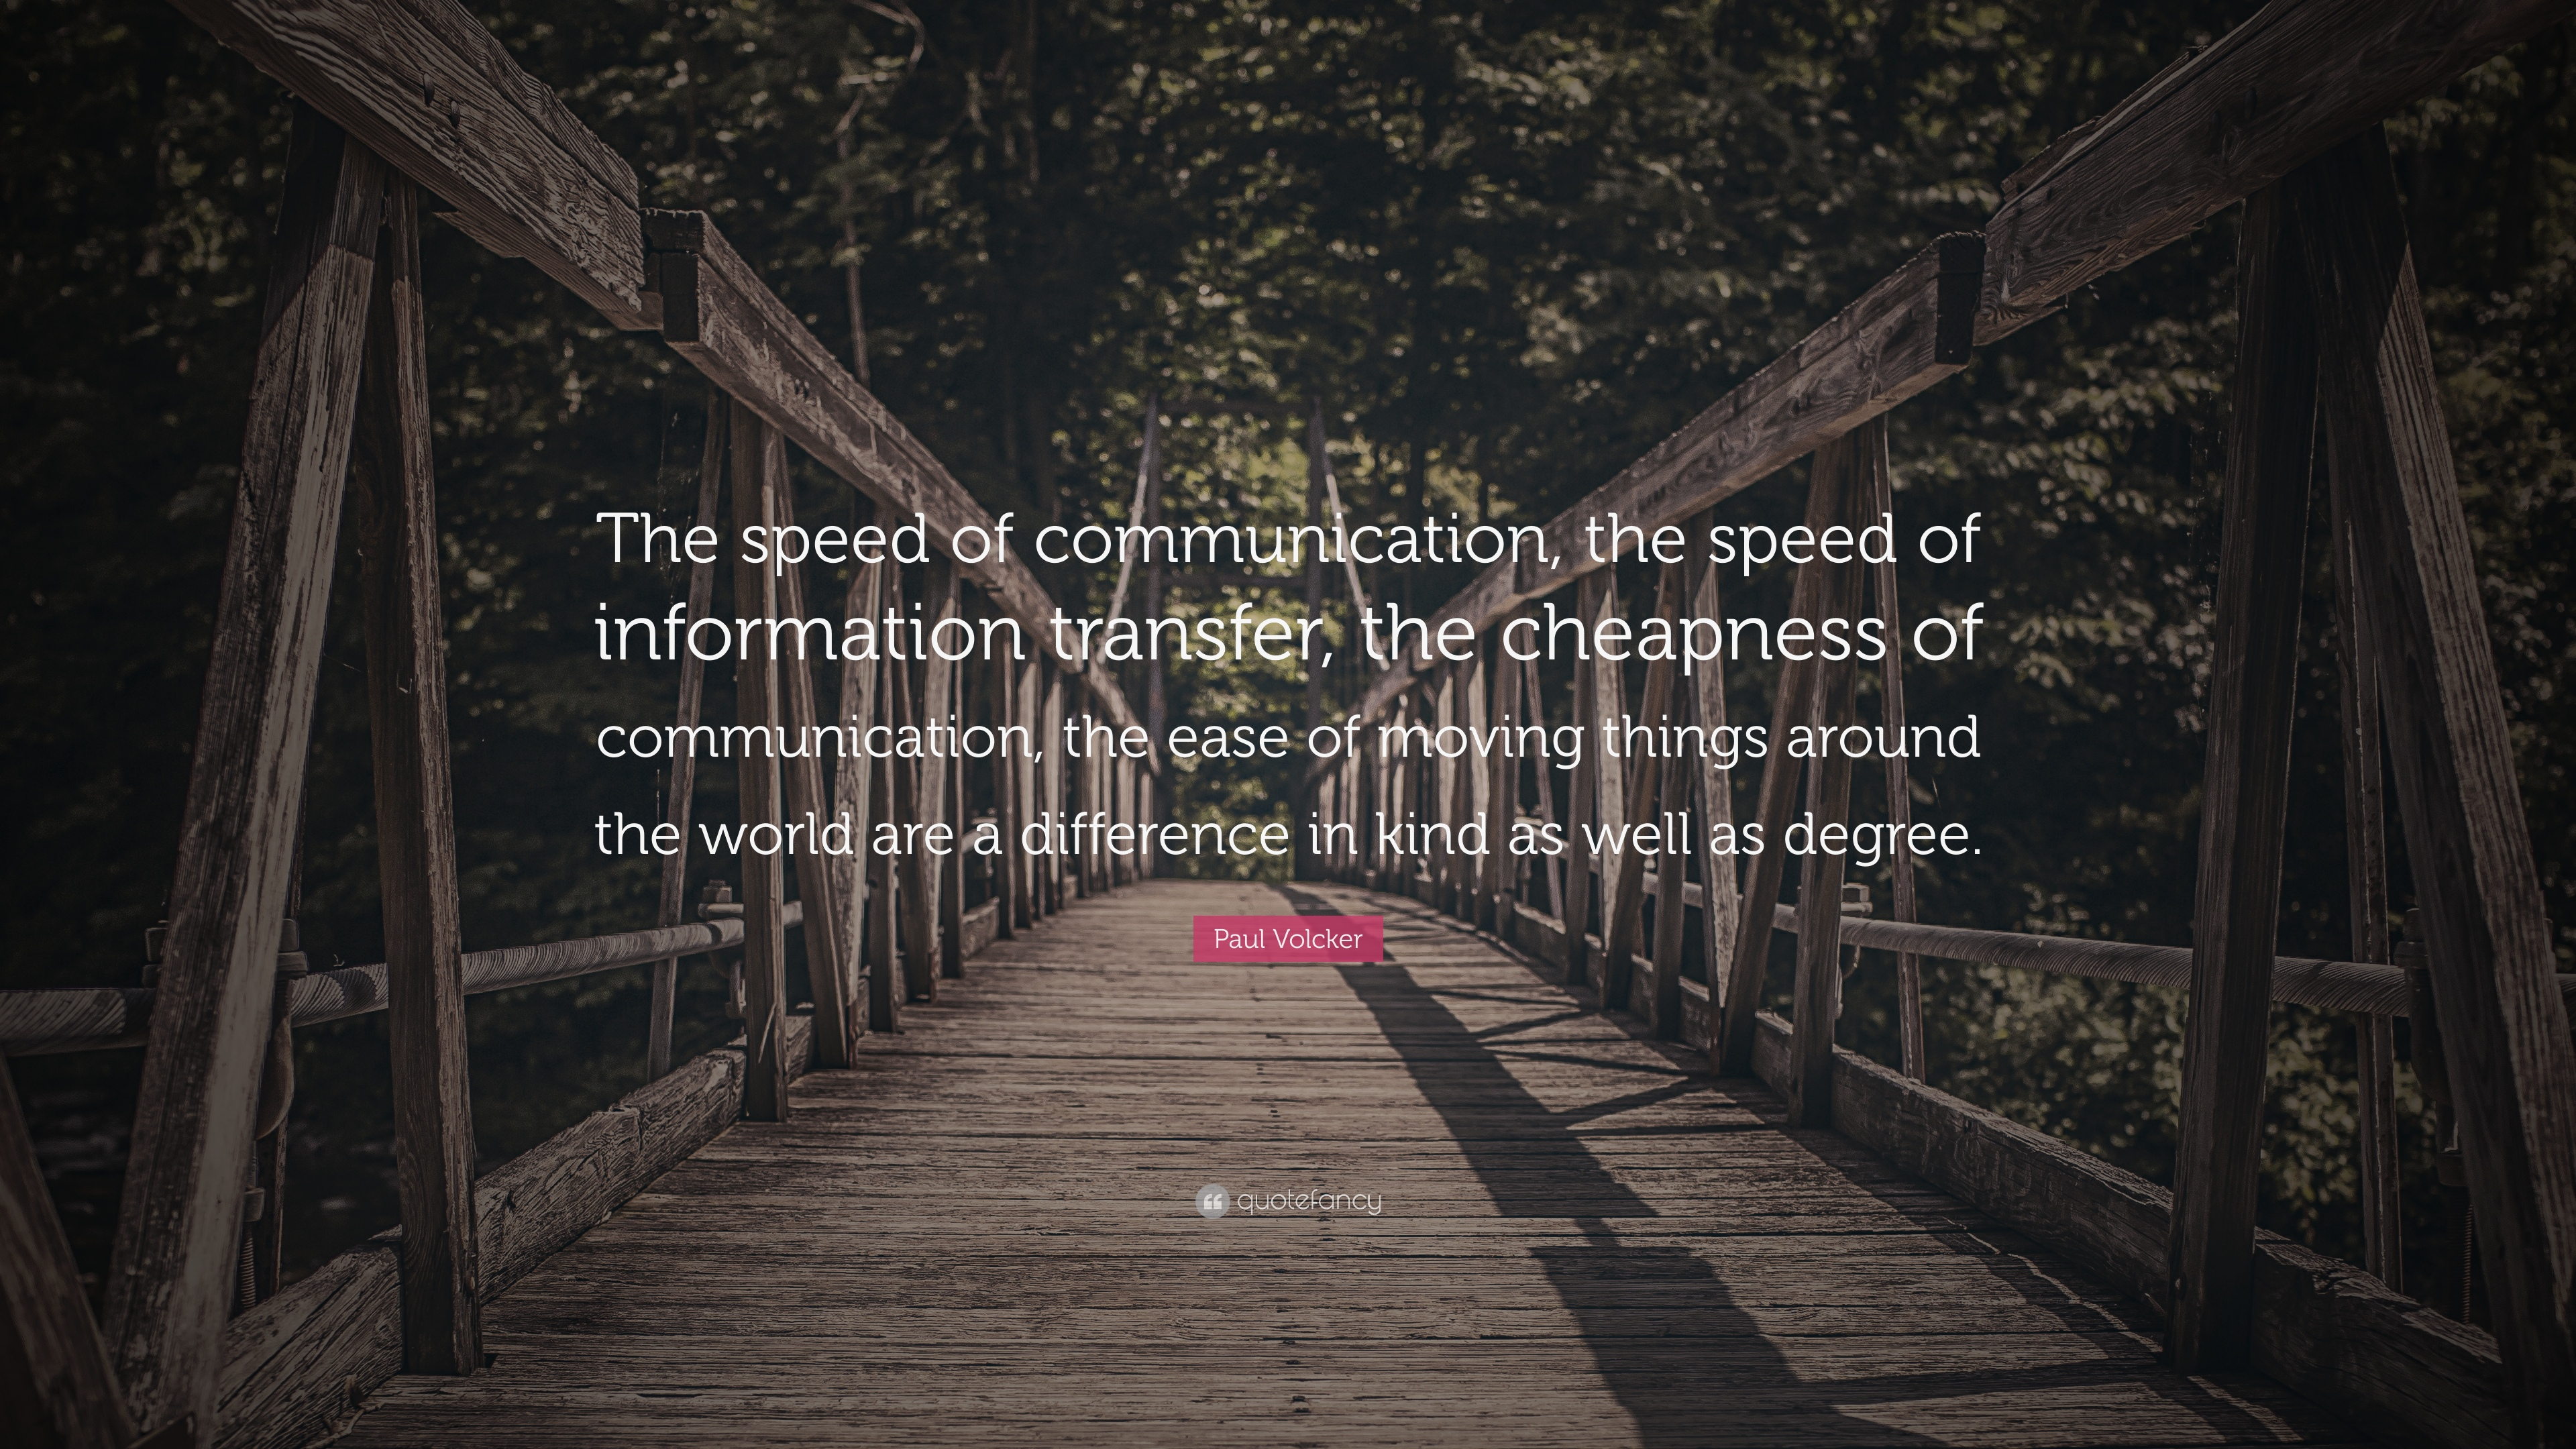 Paul volcker quote the speed of communication the speed of paul volcker quote the speed of communication the speed of information transfer freerunsca Gallery